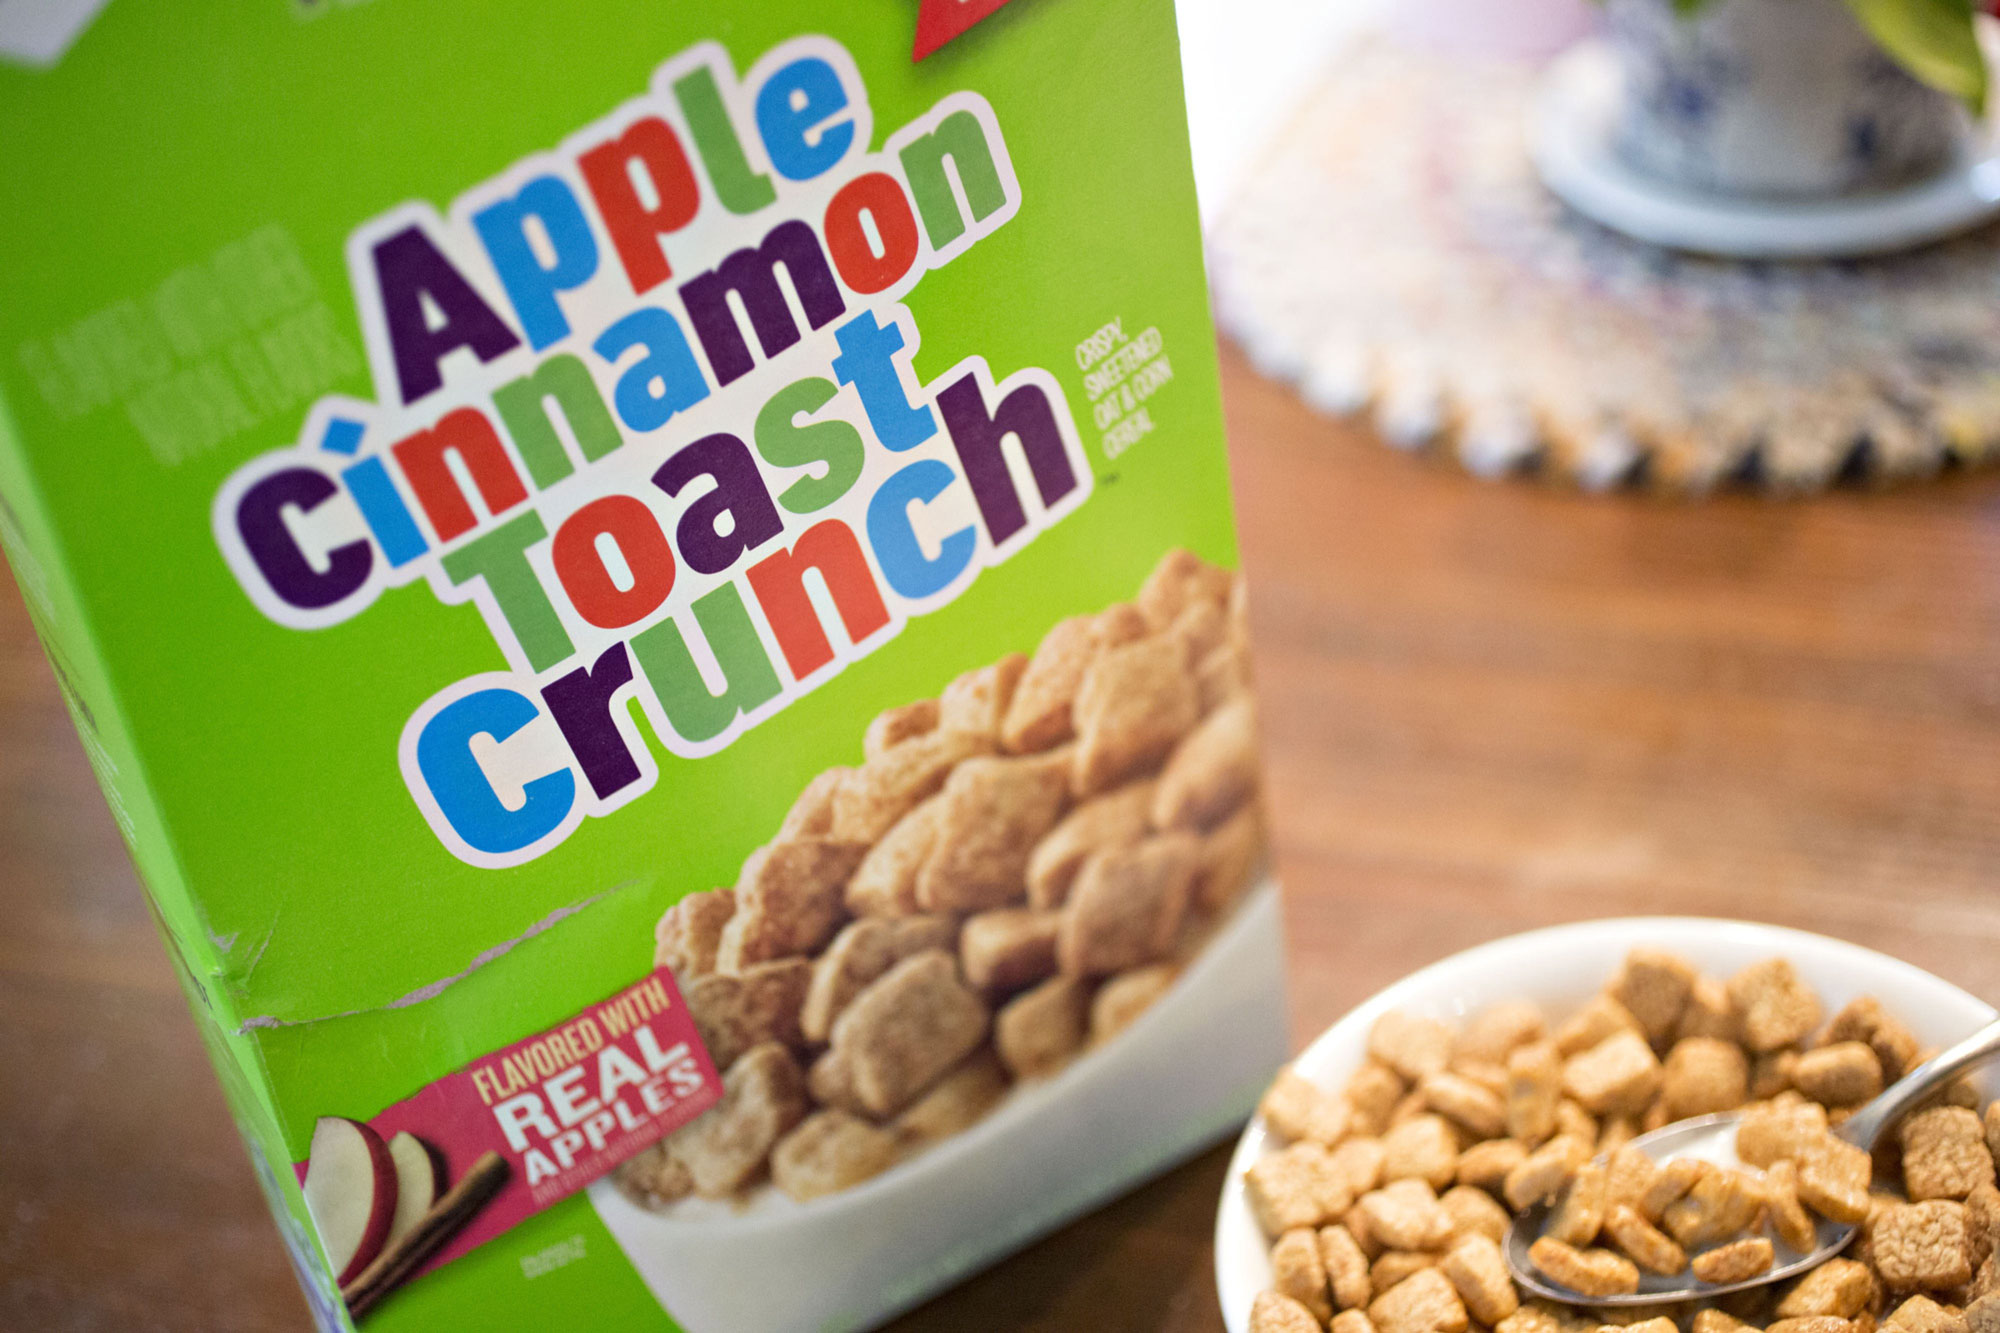 Why we need Cinnamon Toast Crunch and 'Law & Order SVU': Thursday Wake-Up Call